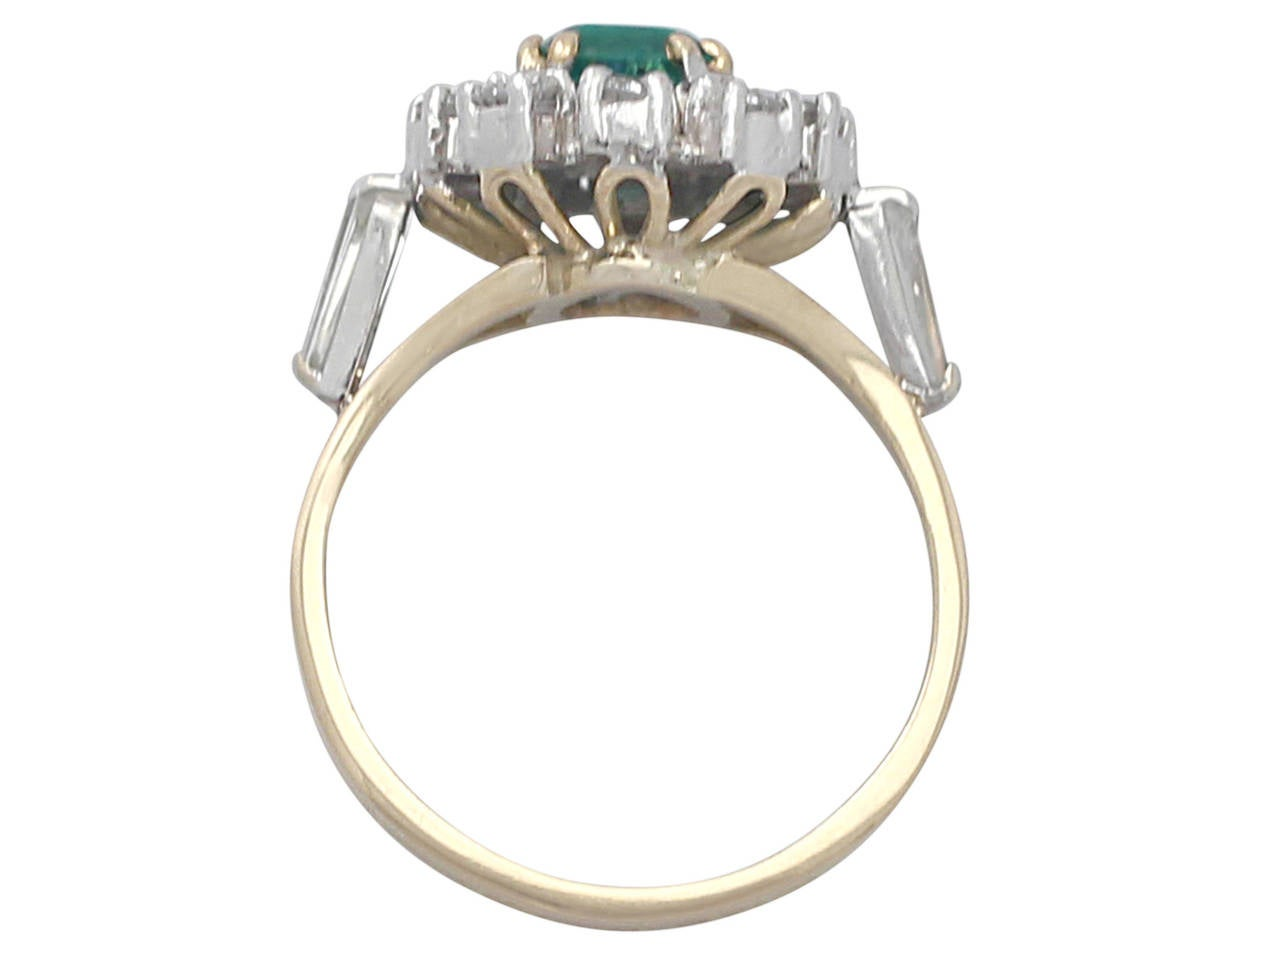 0.84Ct Emerald and 0.50Ct Diamond, 18k Yellow Gold Cluster Ring, Vintage For Sale 1